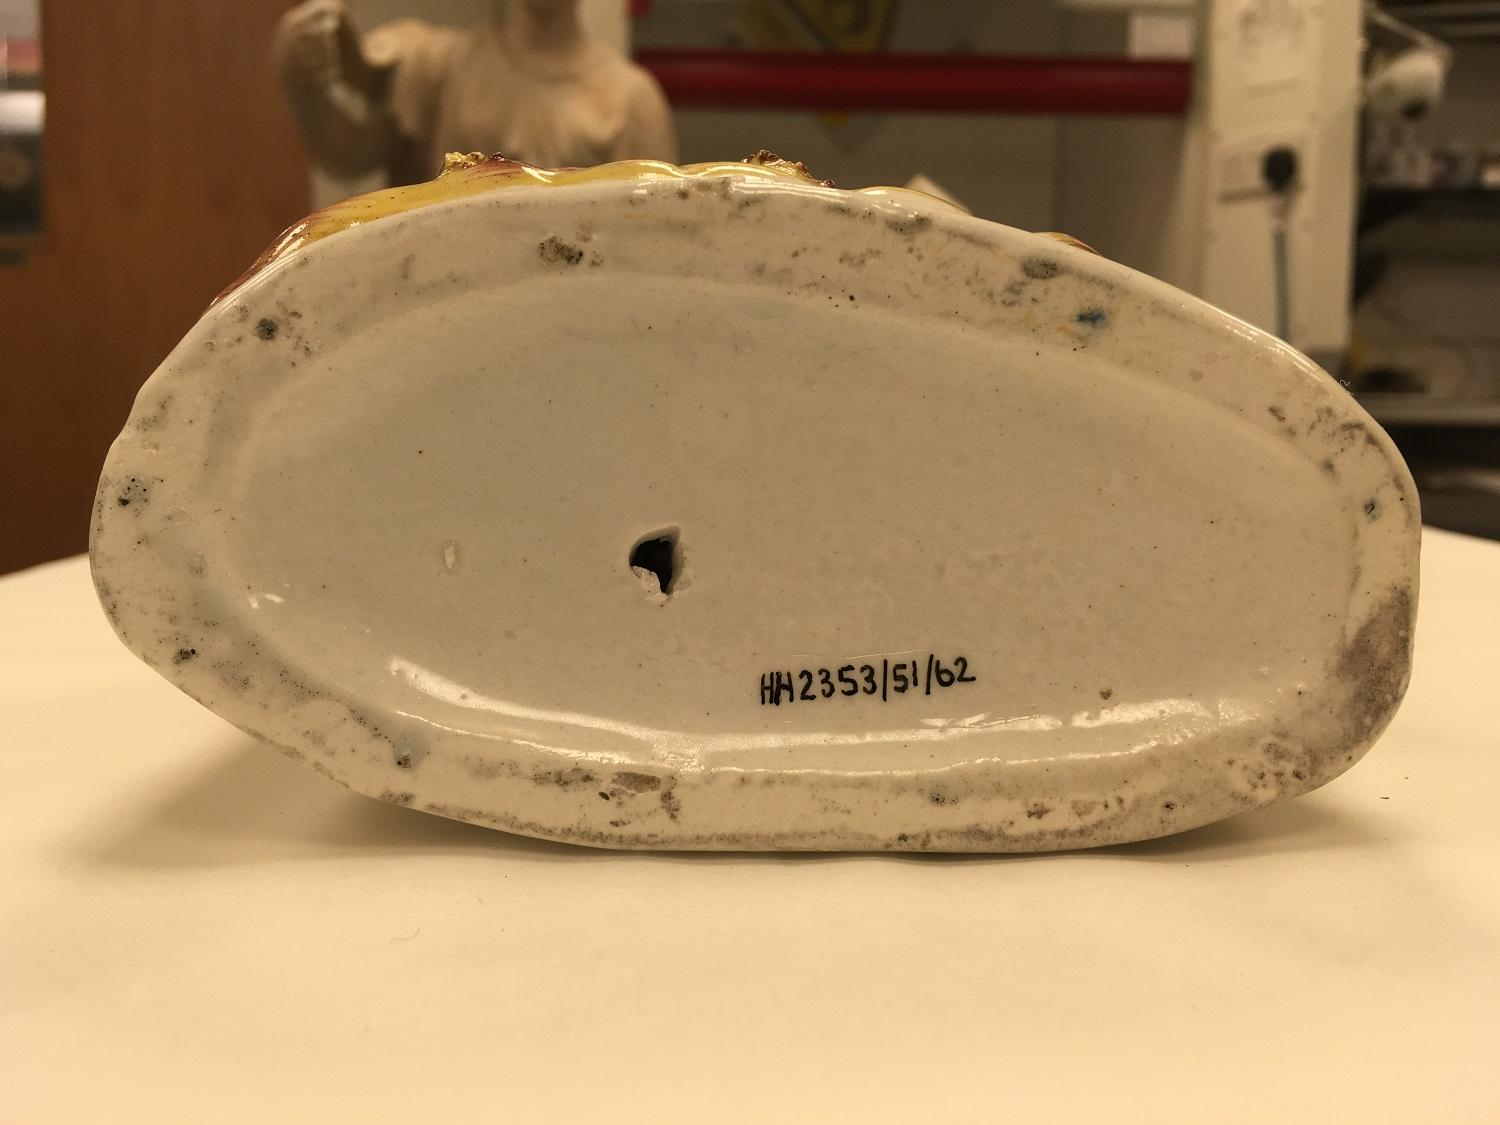 Number in ink on ceramic object